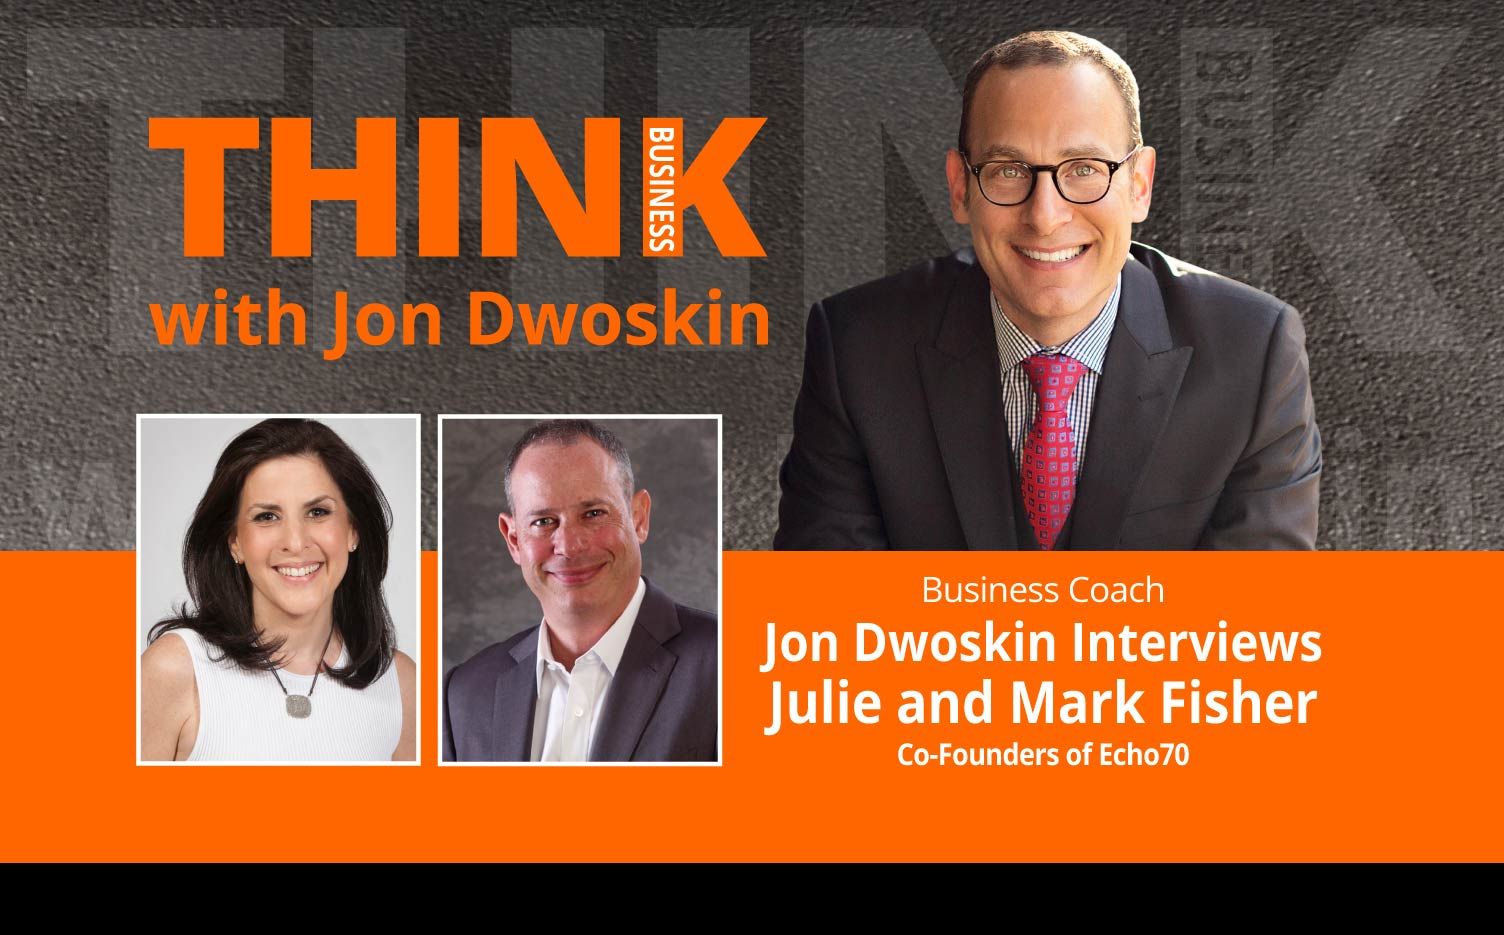 THINK Business Podcast: THINK Business Podcast: Jon Dwoskin Interviews Julie and Mark Fisher, Co-Founders of Echo70